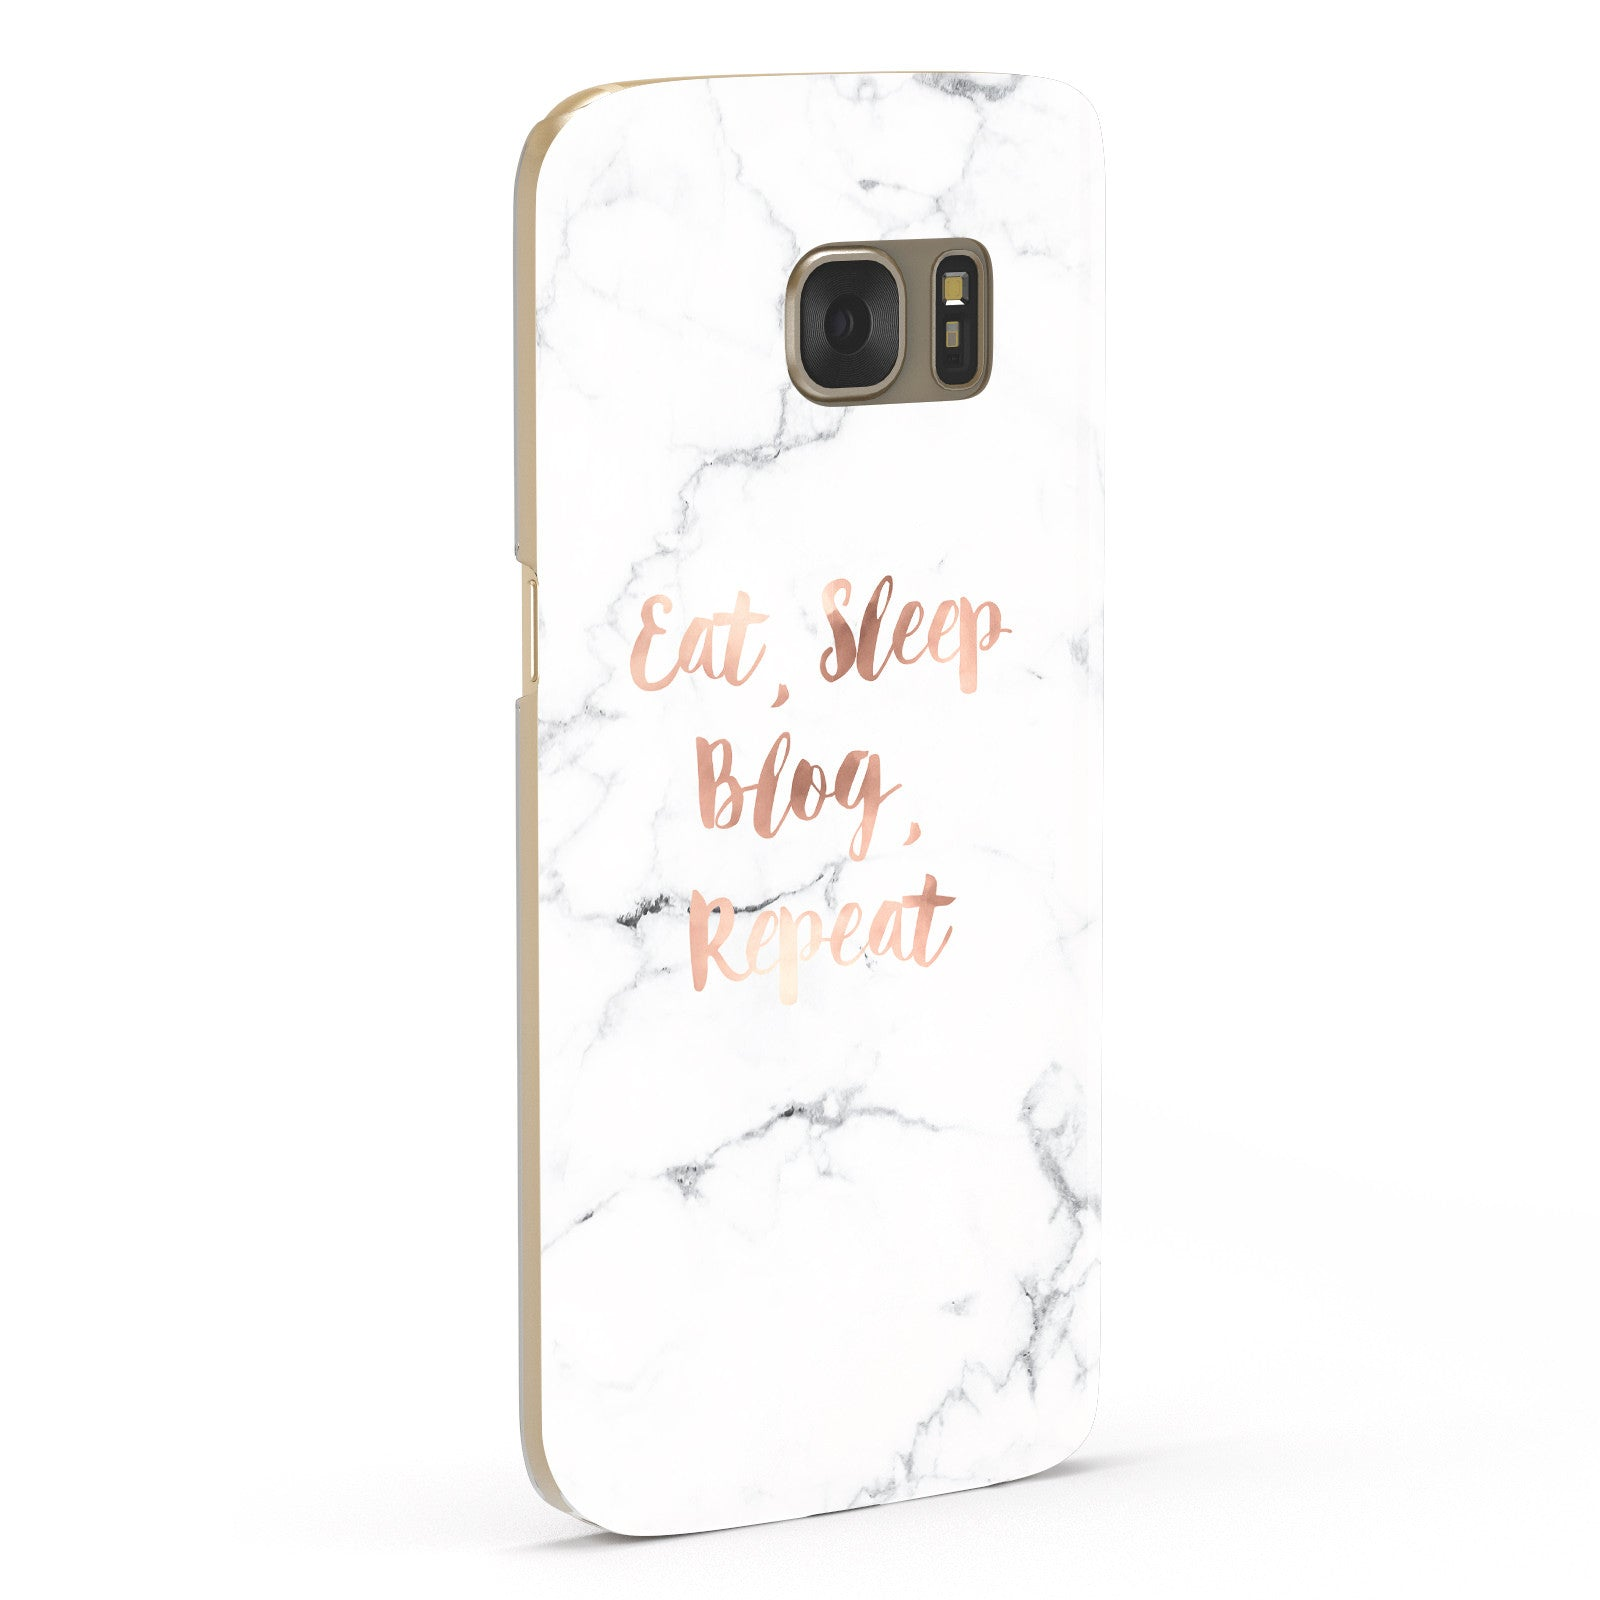 Eat Sleep Blog Repeat Marble Effect Samsung Galaxy Case Fourty Five Degrees